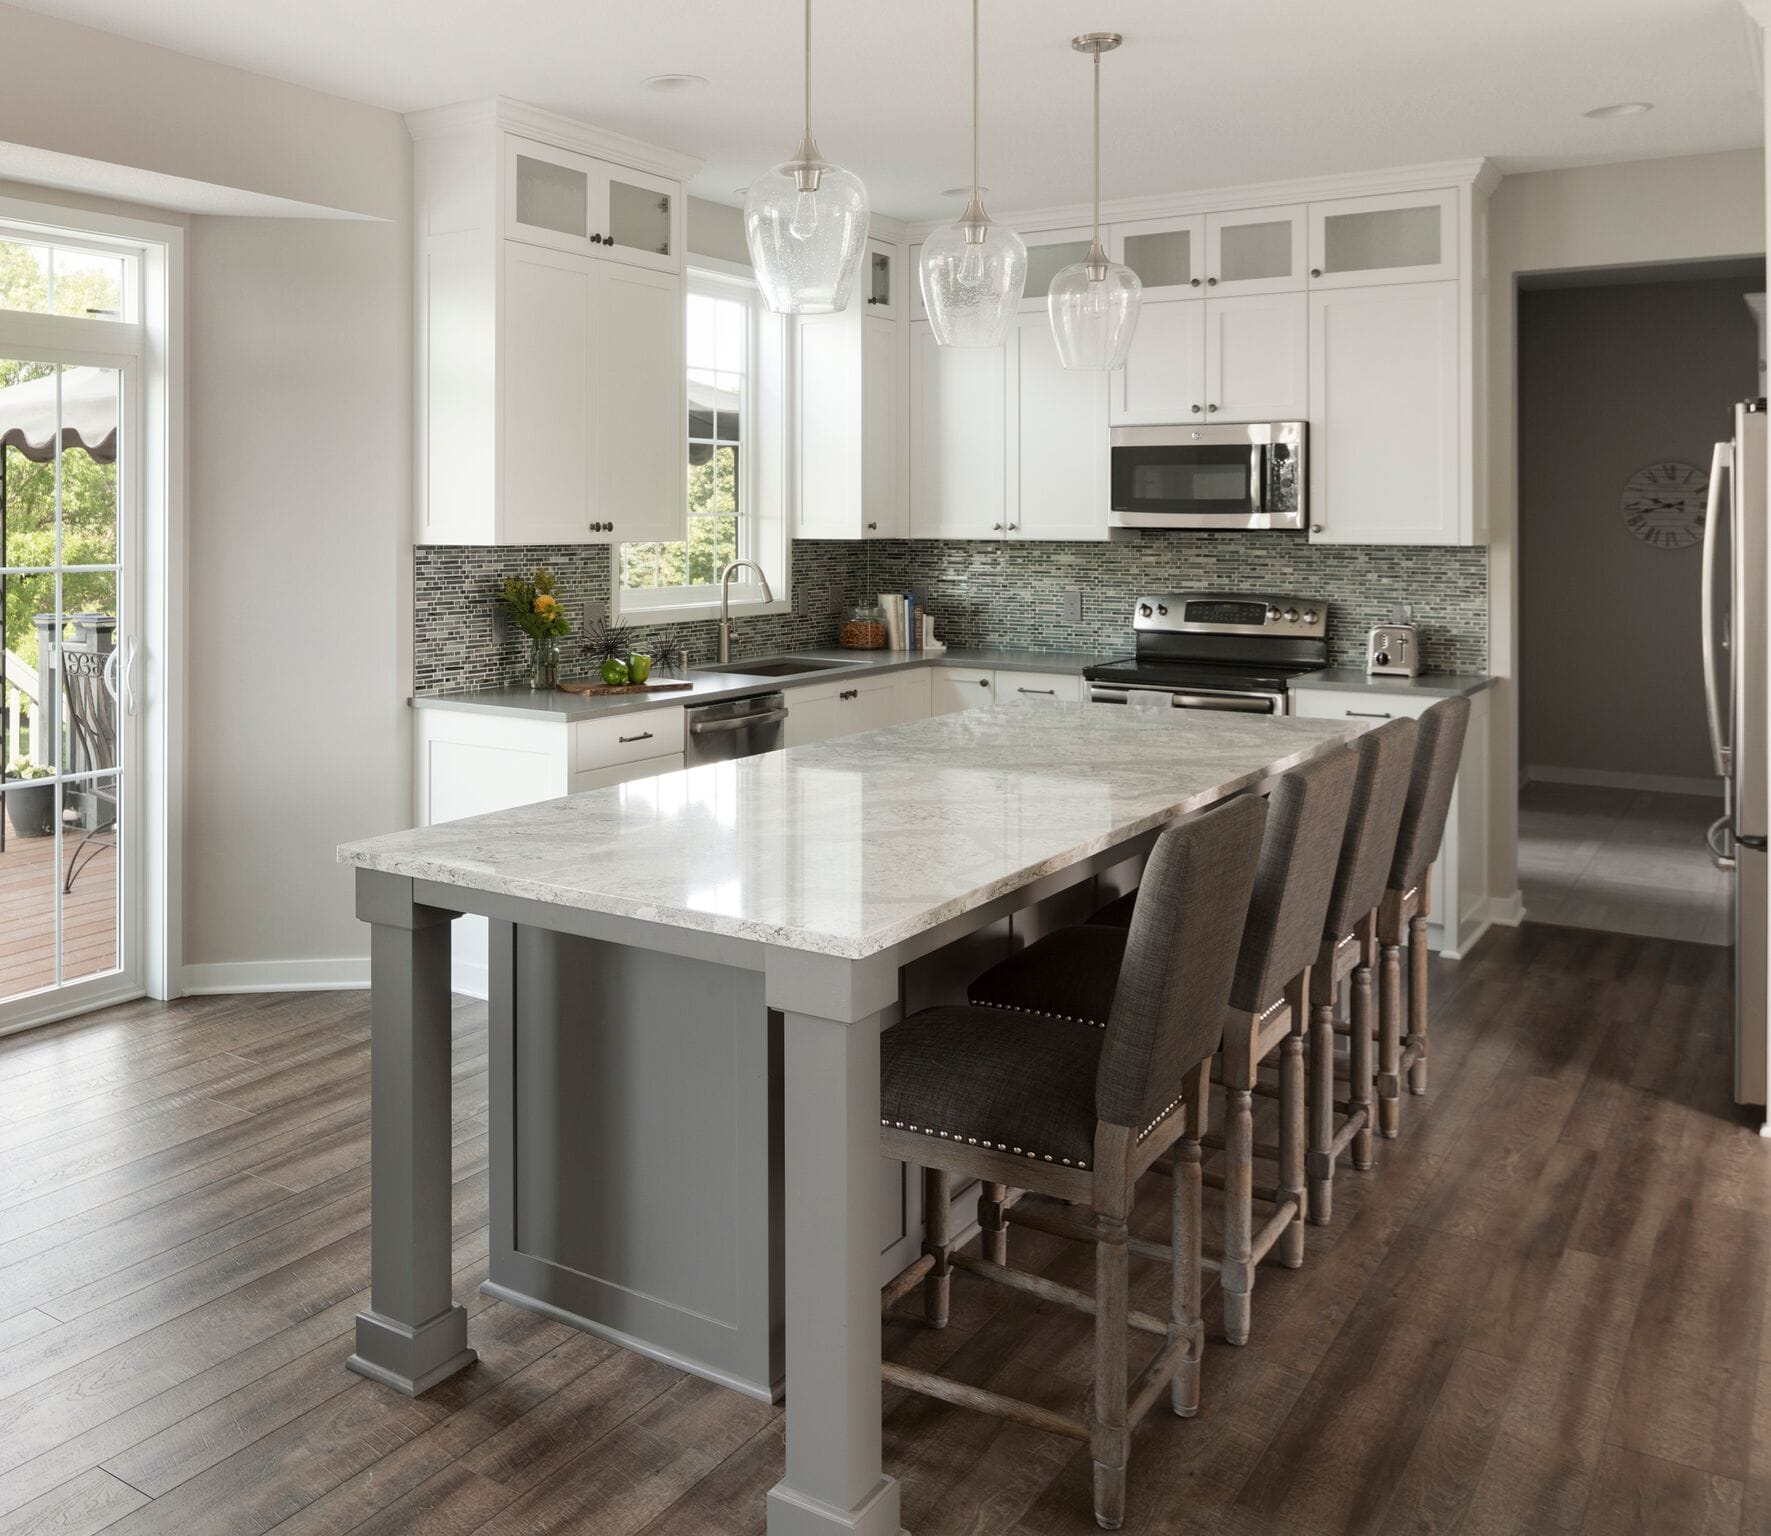 Home Remodeling: Twin Cities Home Design & Remodeling